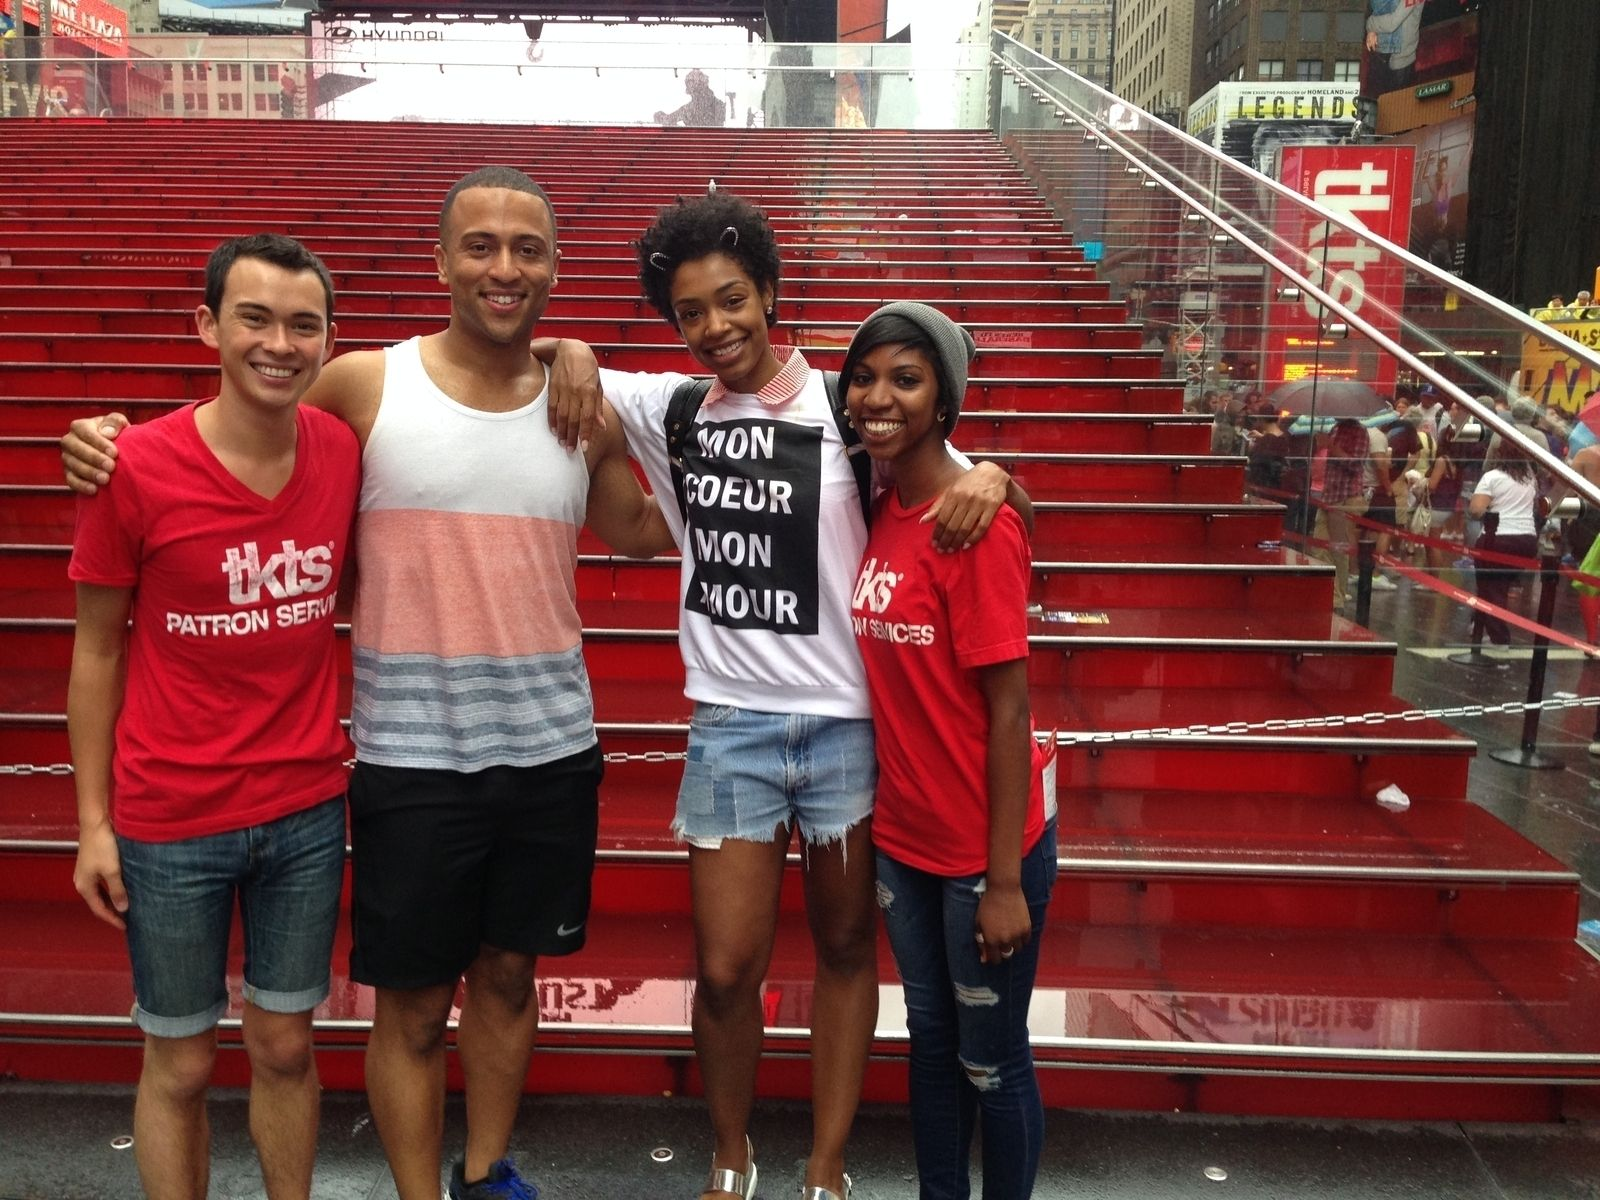 Cast members from The Lion King visited TKTS! | TKTS Times Square ...